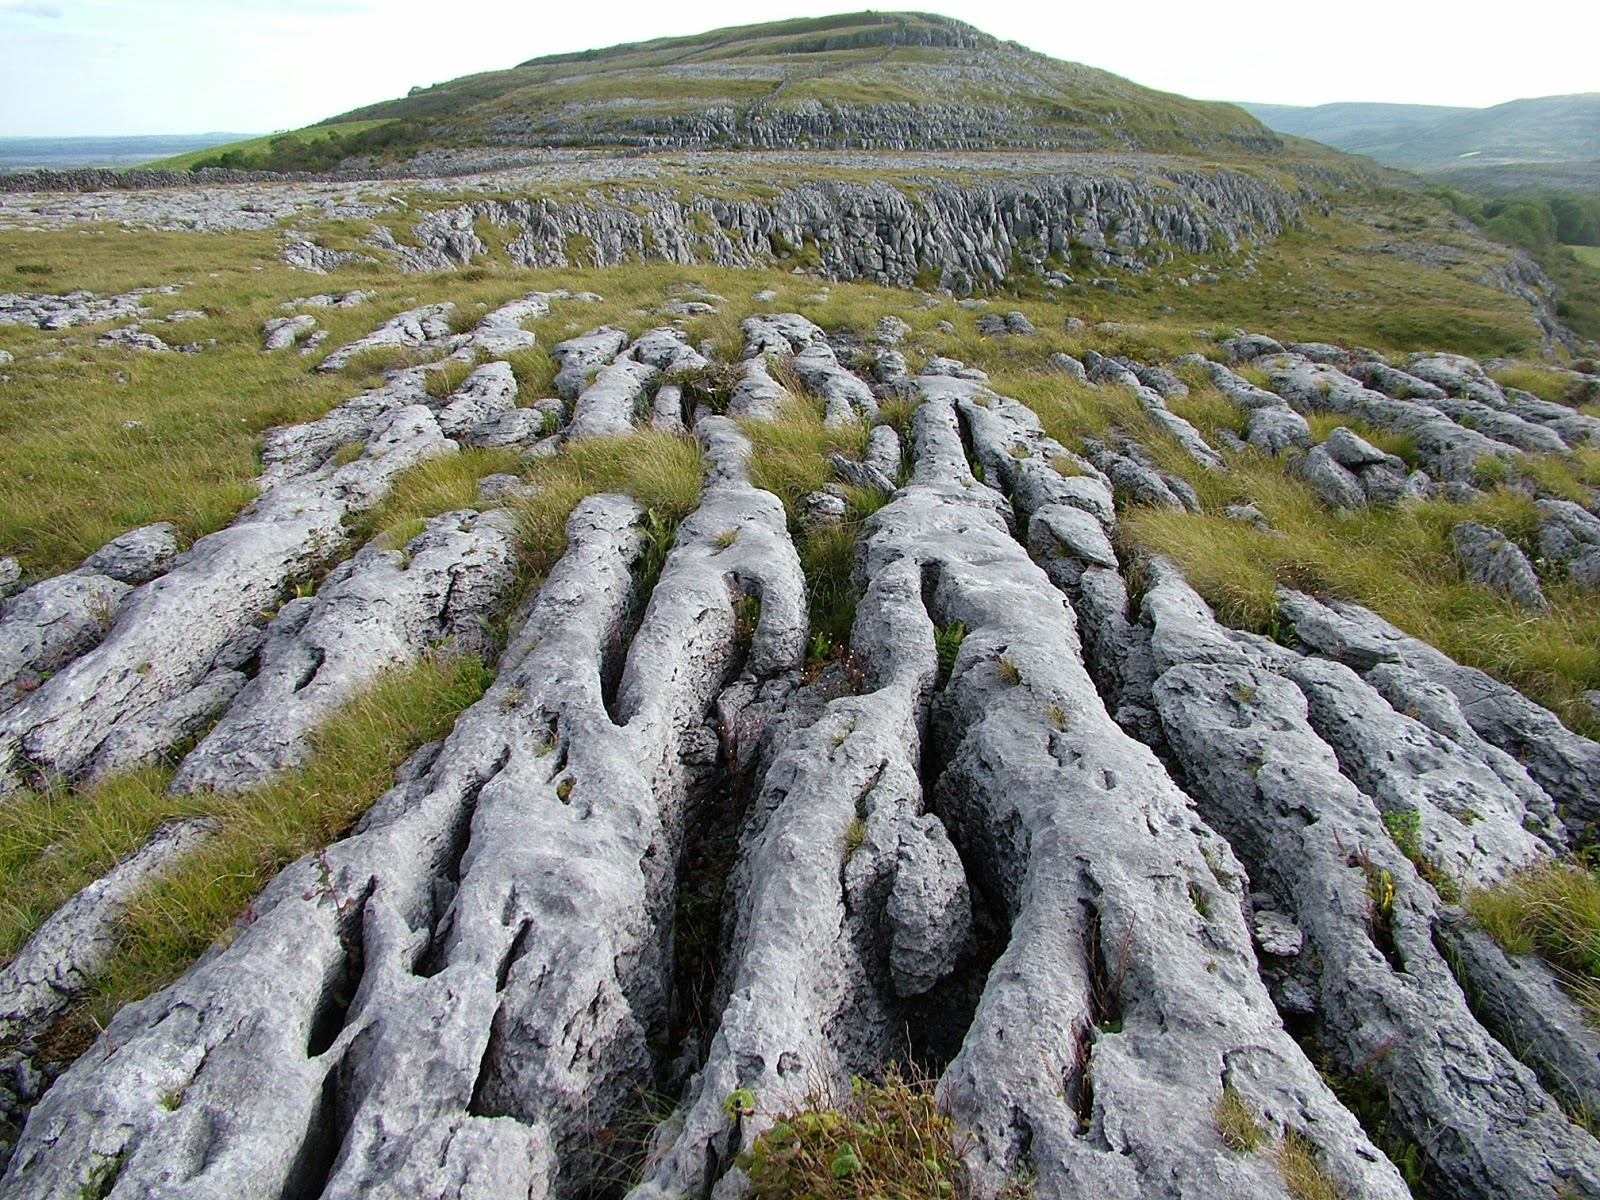 Cliffs and Burren make 100 Great Geosites List